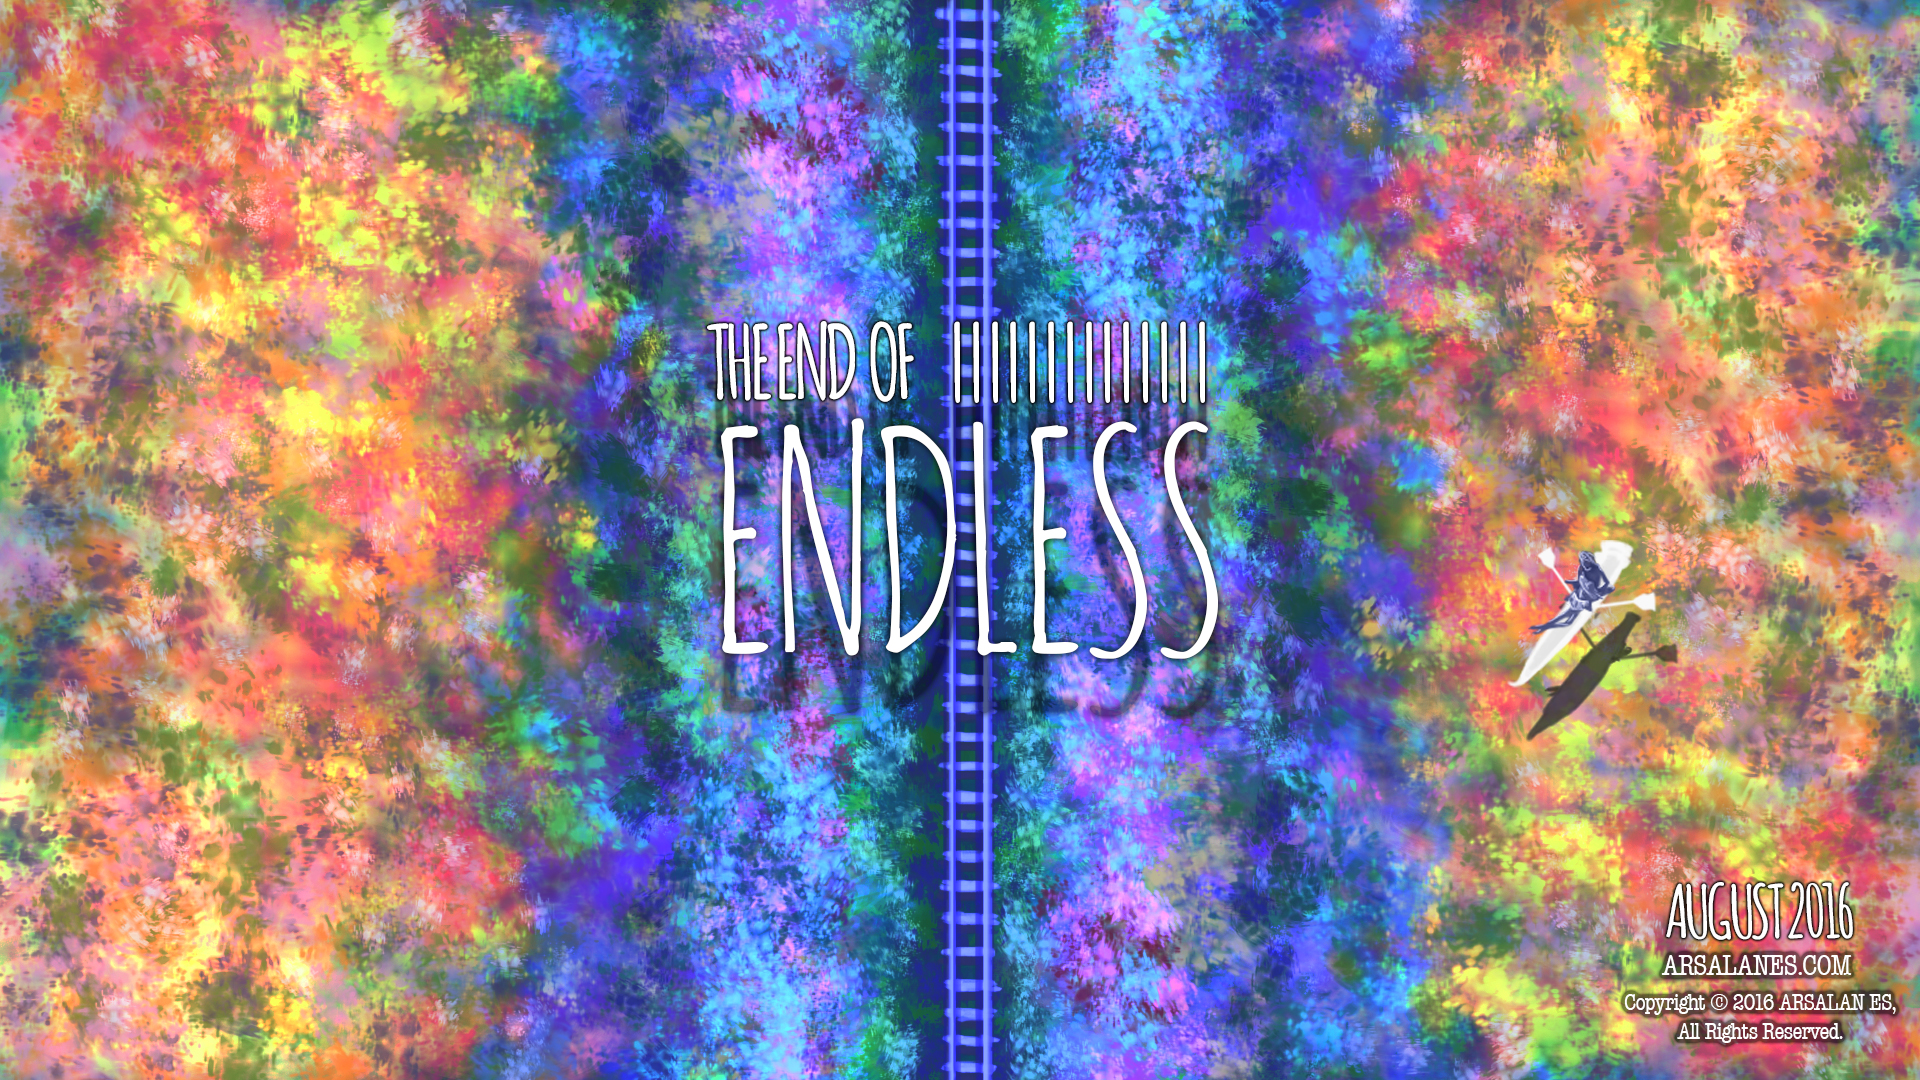 The End of ENDLESS